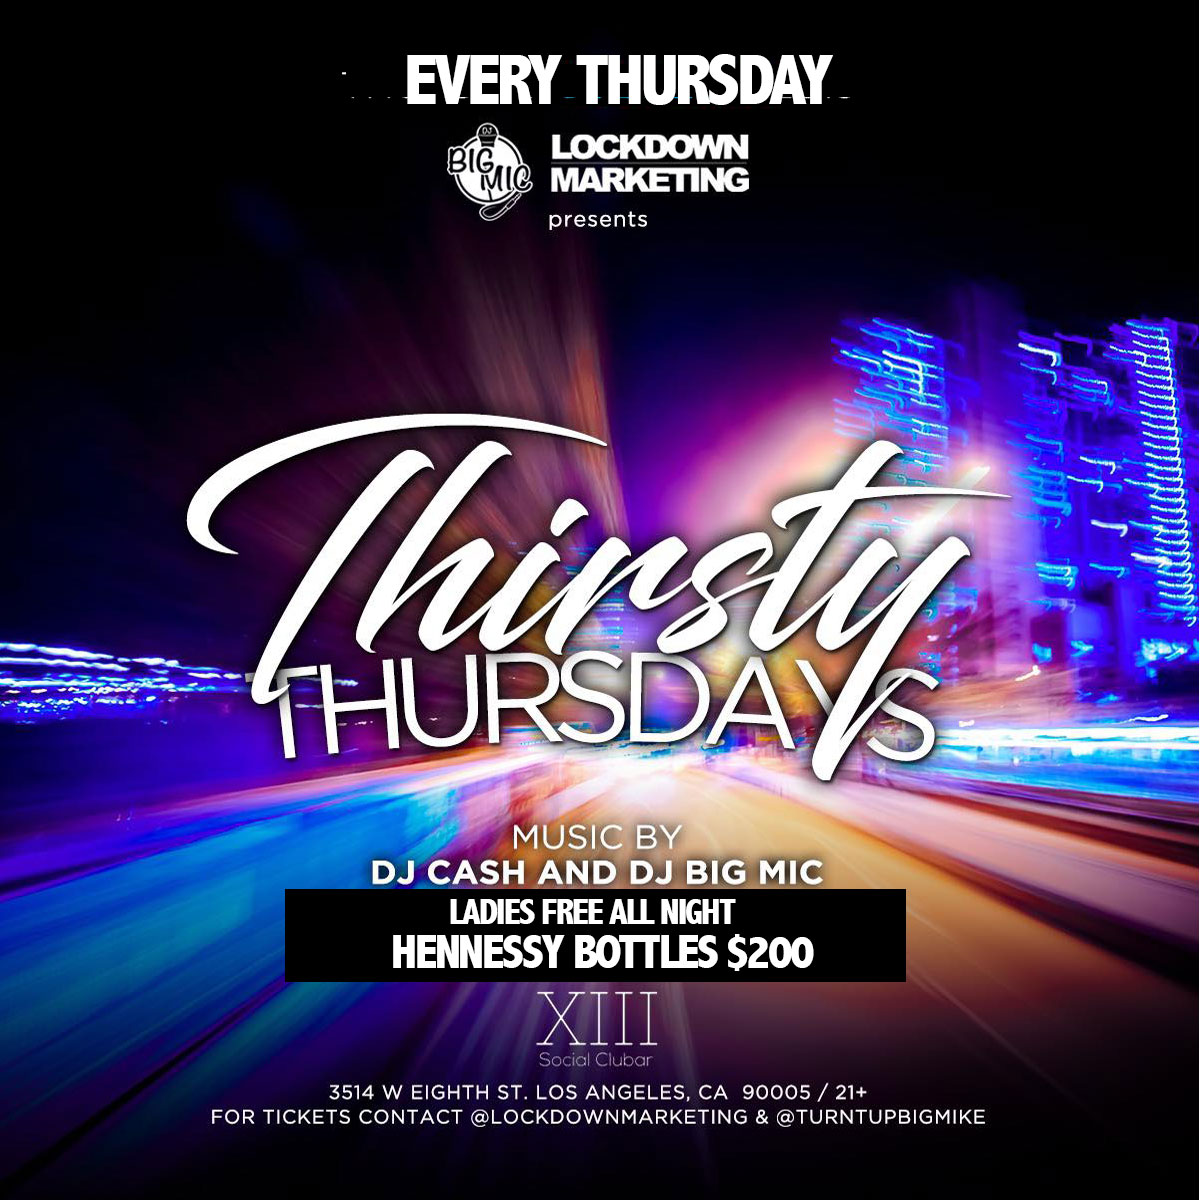 This thursday come party at the new spot for artist to get their tracks played @xiii_social with @lockdownmarketing . Hosted by @turntupbigmike Ladies free all night with but faster entry with ticket RSVP $10 b4 11 for Guys Drink Specials $200 Hennessy Bottles Promotional Giveaways Valet Parking  #thirstythursdays #thirstythursdaysLA #thirstythursday #thirstythursdayktown ##thirstythursdaylosangeles #socialclubar #socialclubarla #socialclubarktown #socialclubarthirstythursday#la #lanightlife #hollywood #hollwoodnightlife #hollywoodclubs #csun #csuf #csula #csudh #usc #ucla #uci #csulb #lattc #lacc #westla #piercecollege #laharbor #lbstate #lbcc #lasw #elcaminocc #elac #glendalecc #pcc #smc #lmu